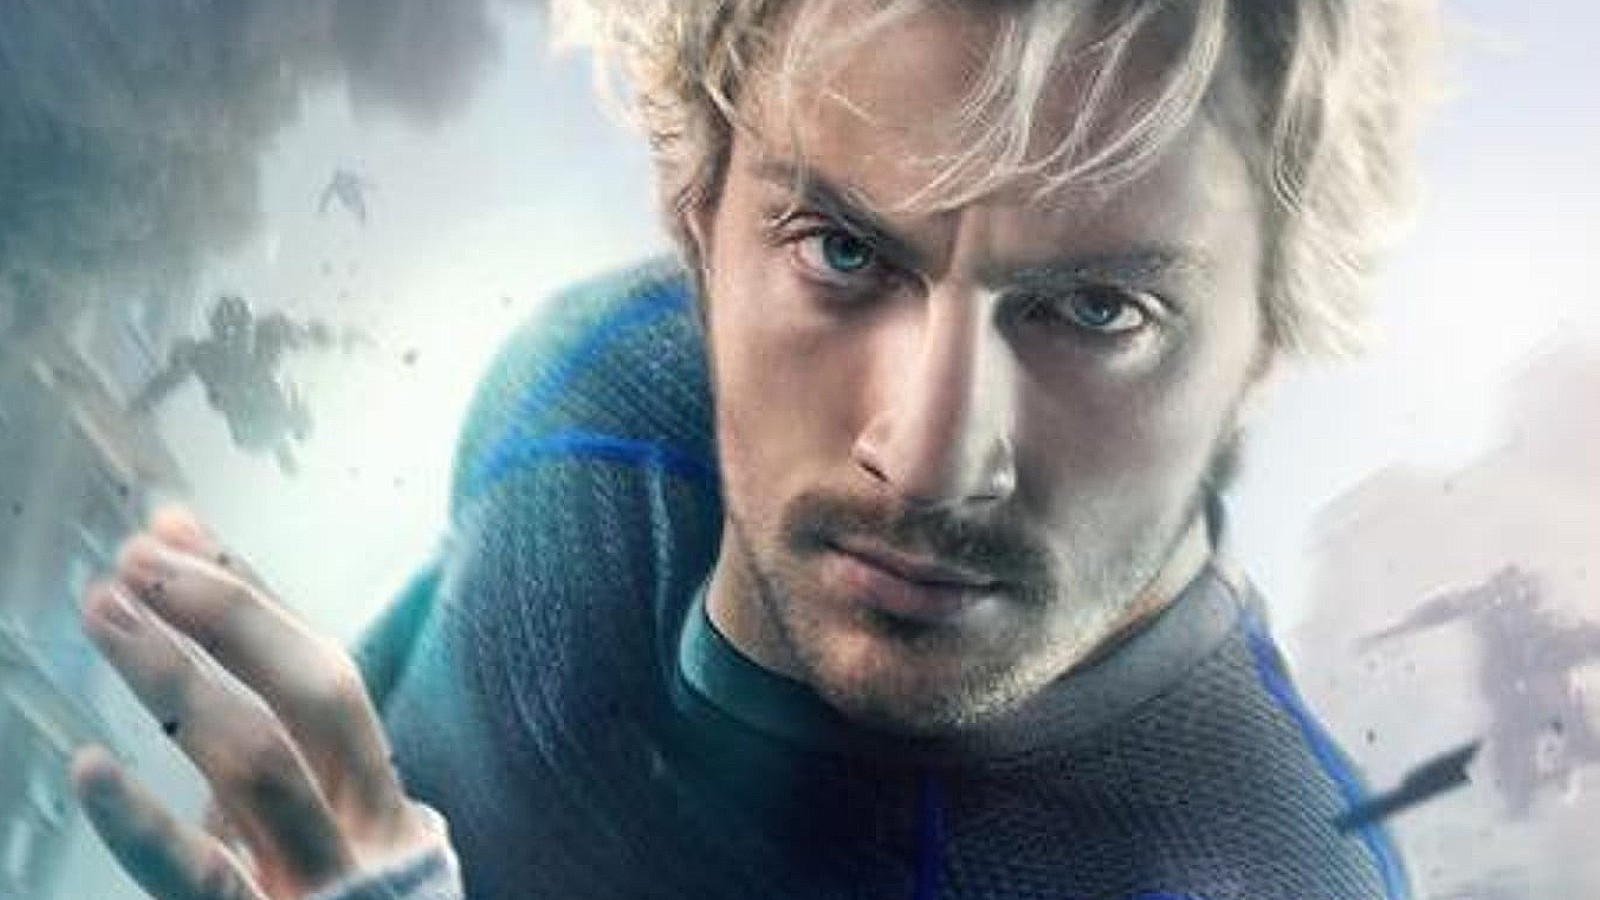 Quicksilver in Avengers Age of Ultron